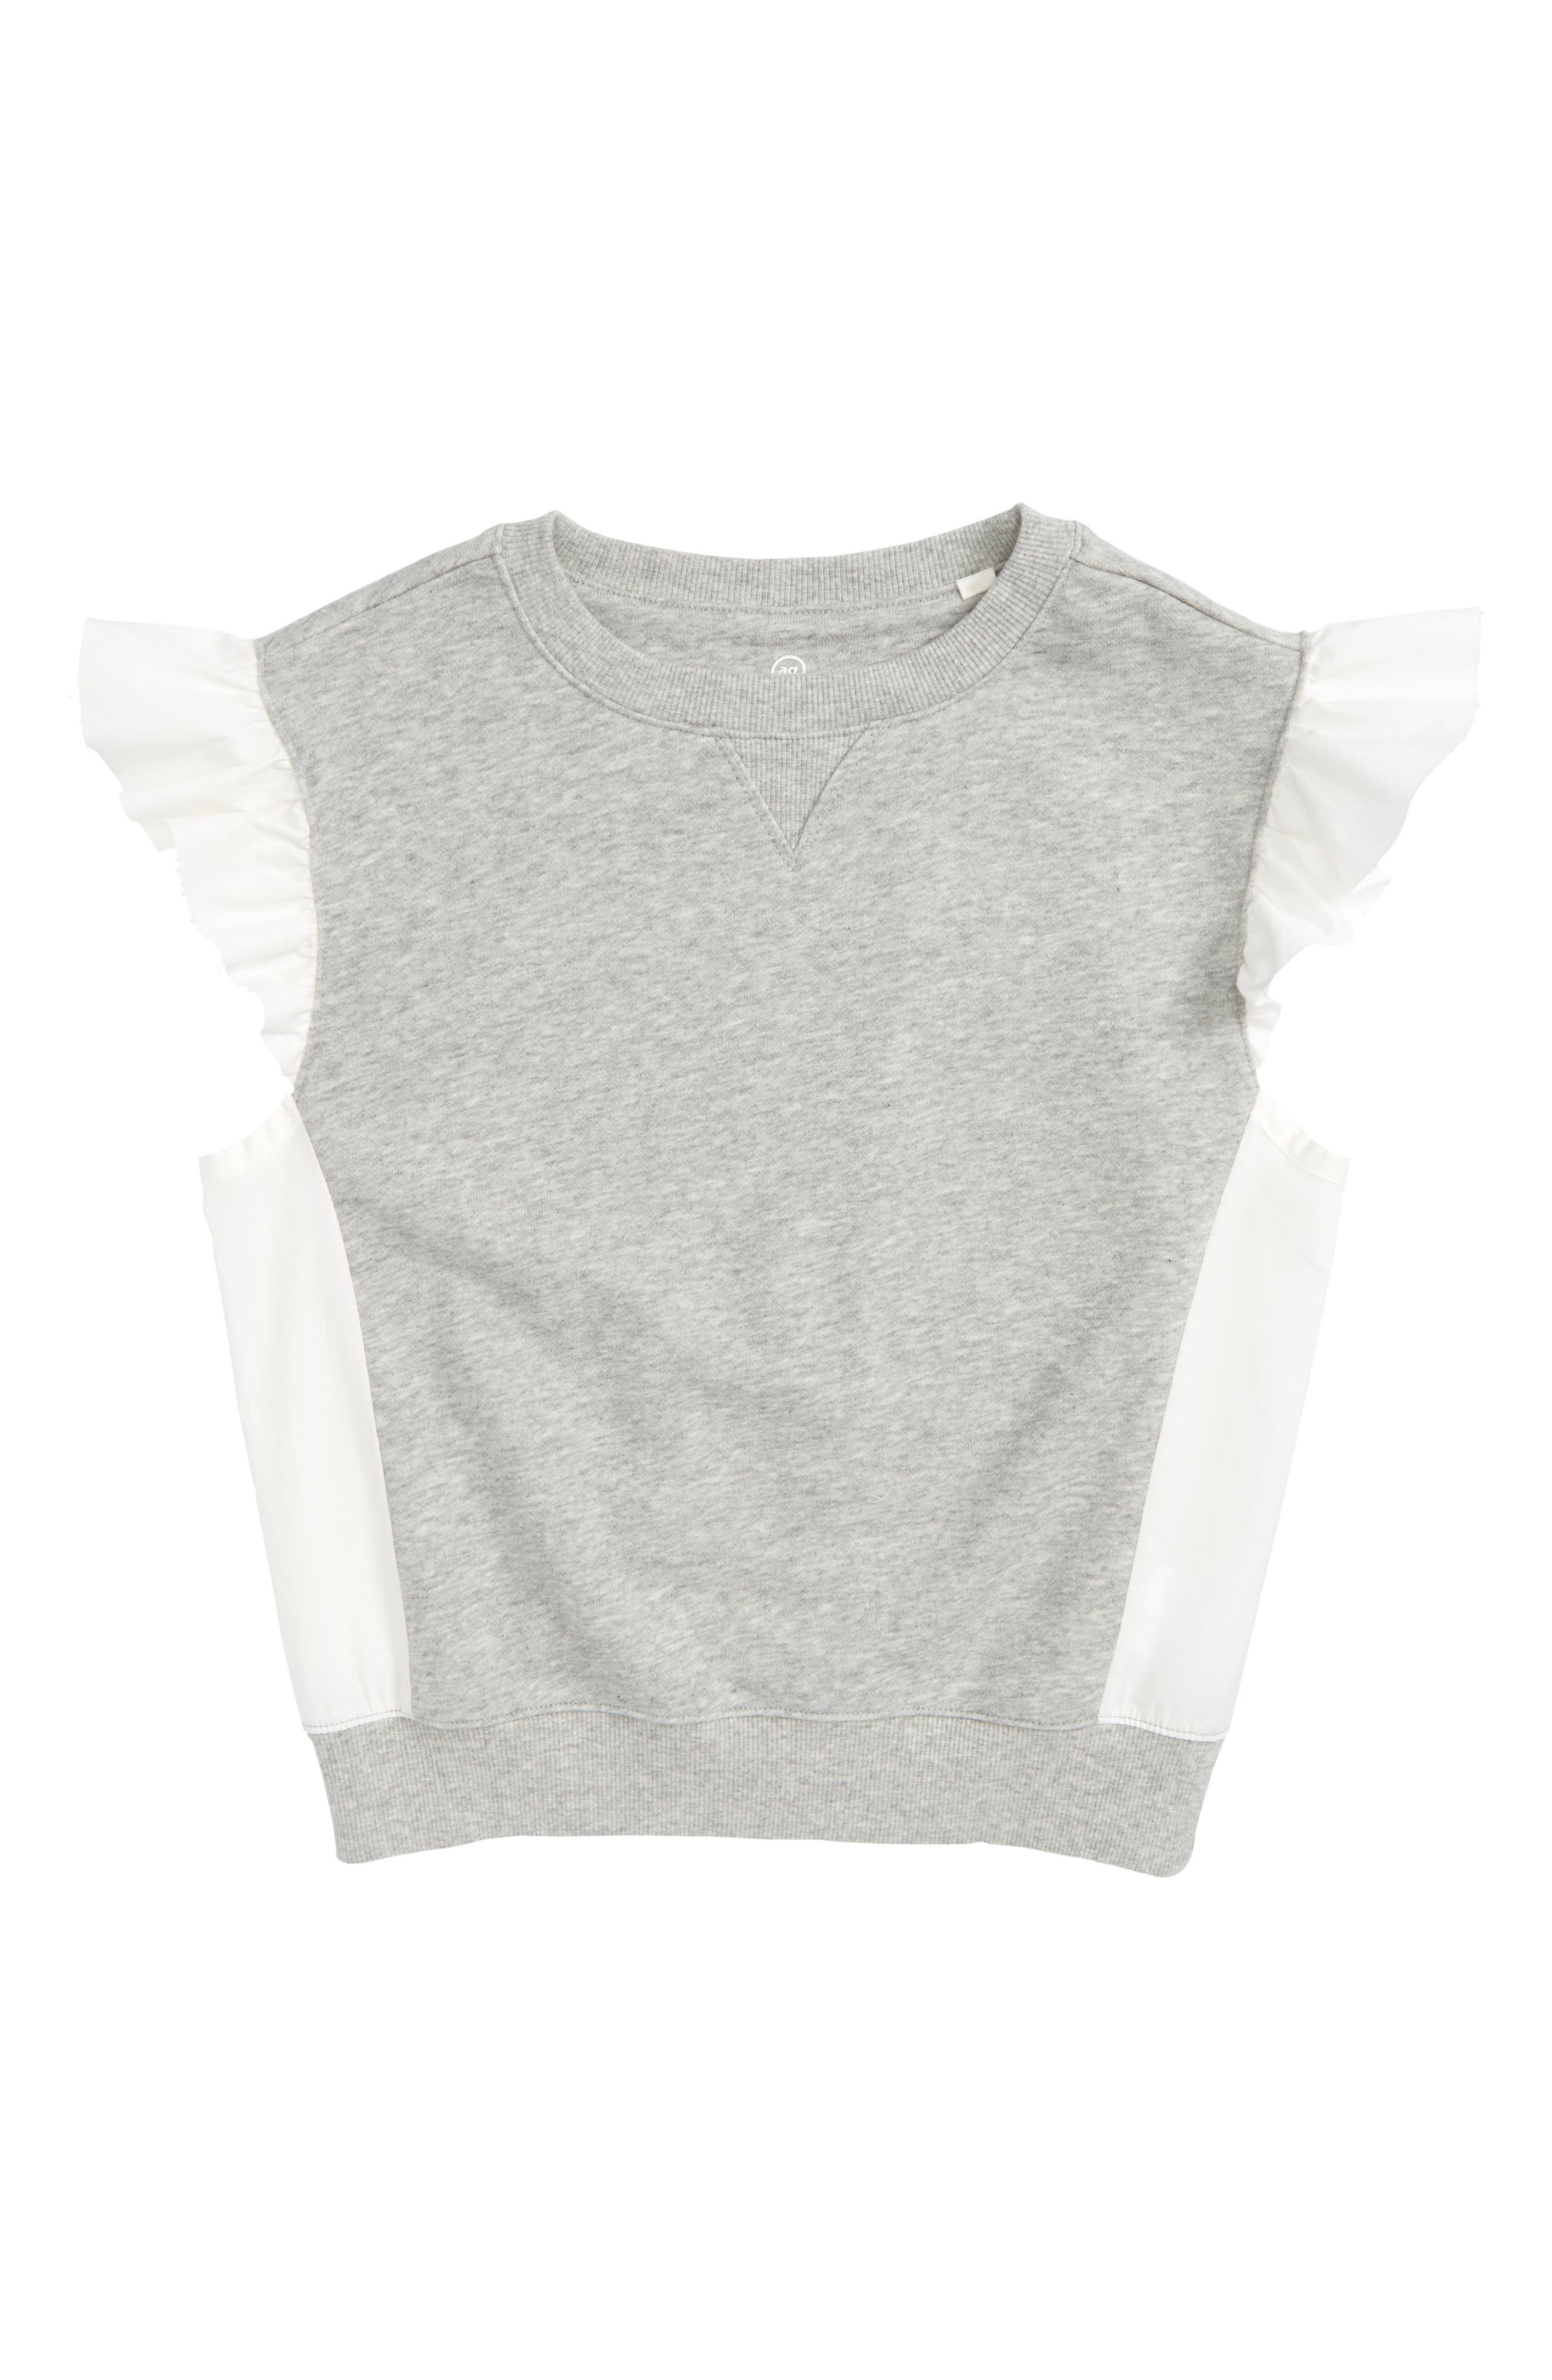 Flutter Sleeve Top,                             Main thumbnail 1, color,                             Heather Grey